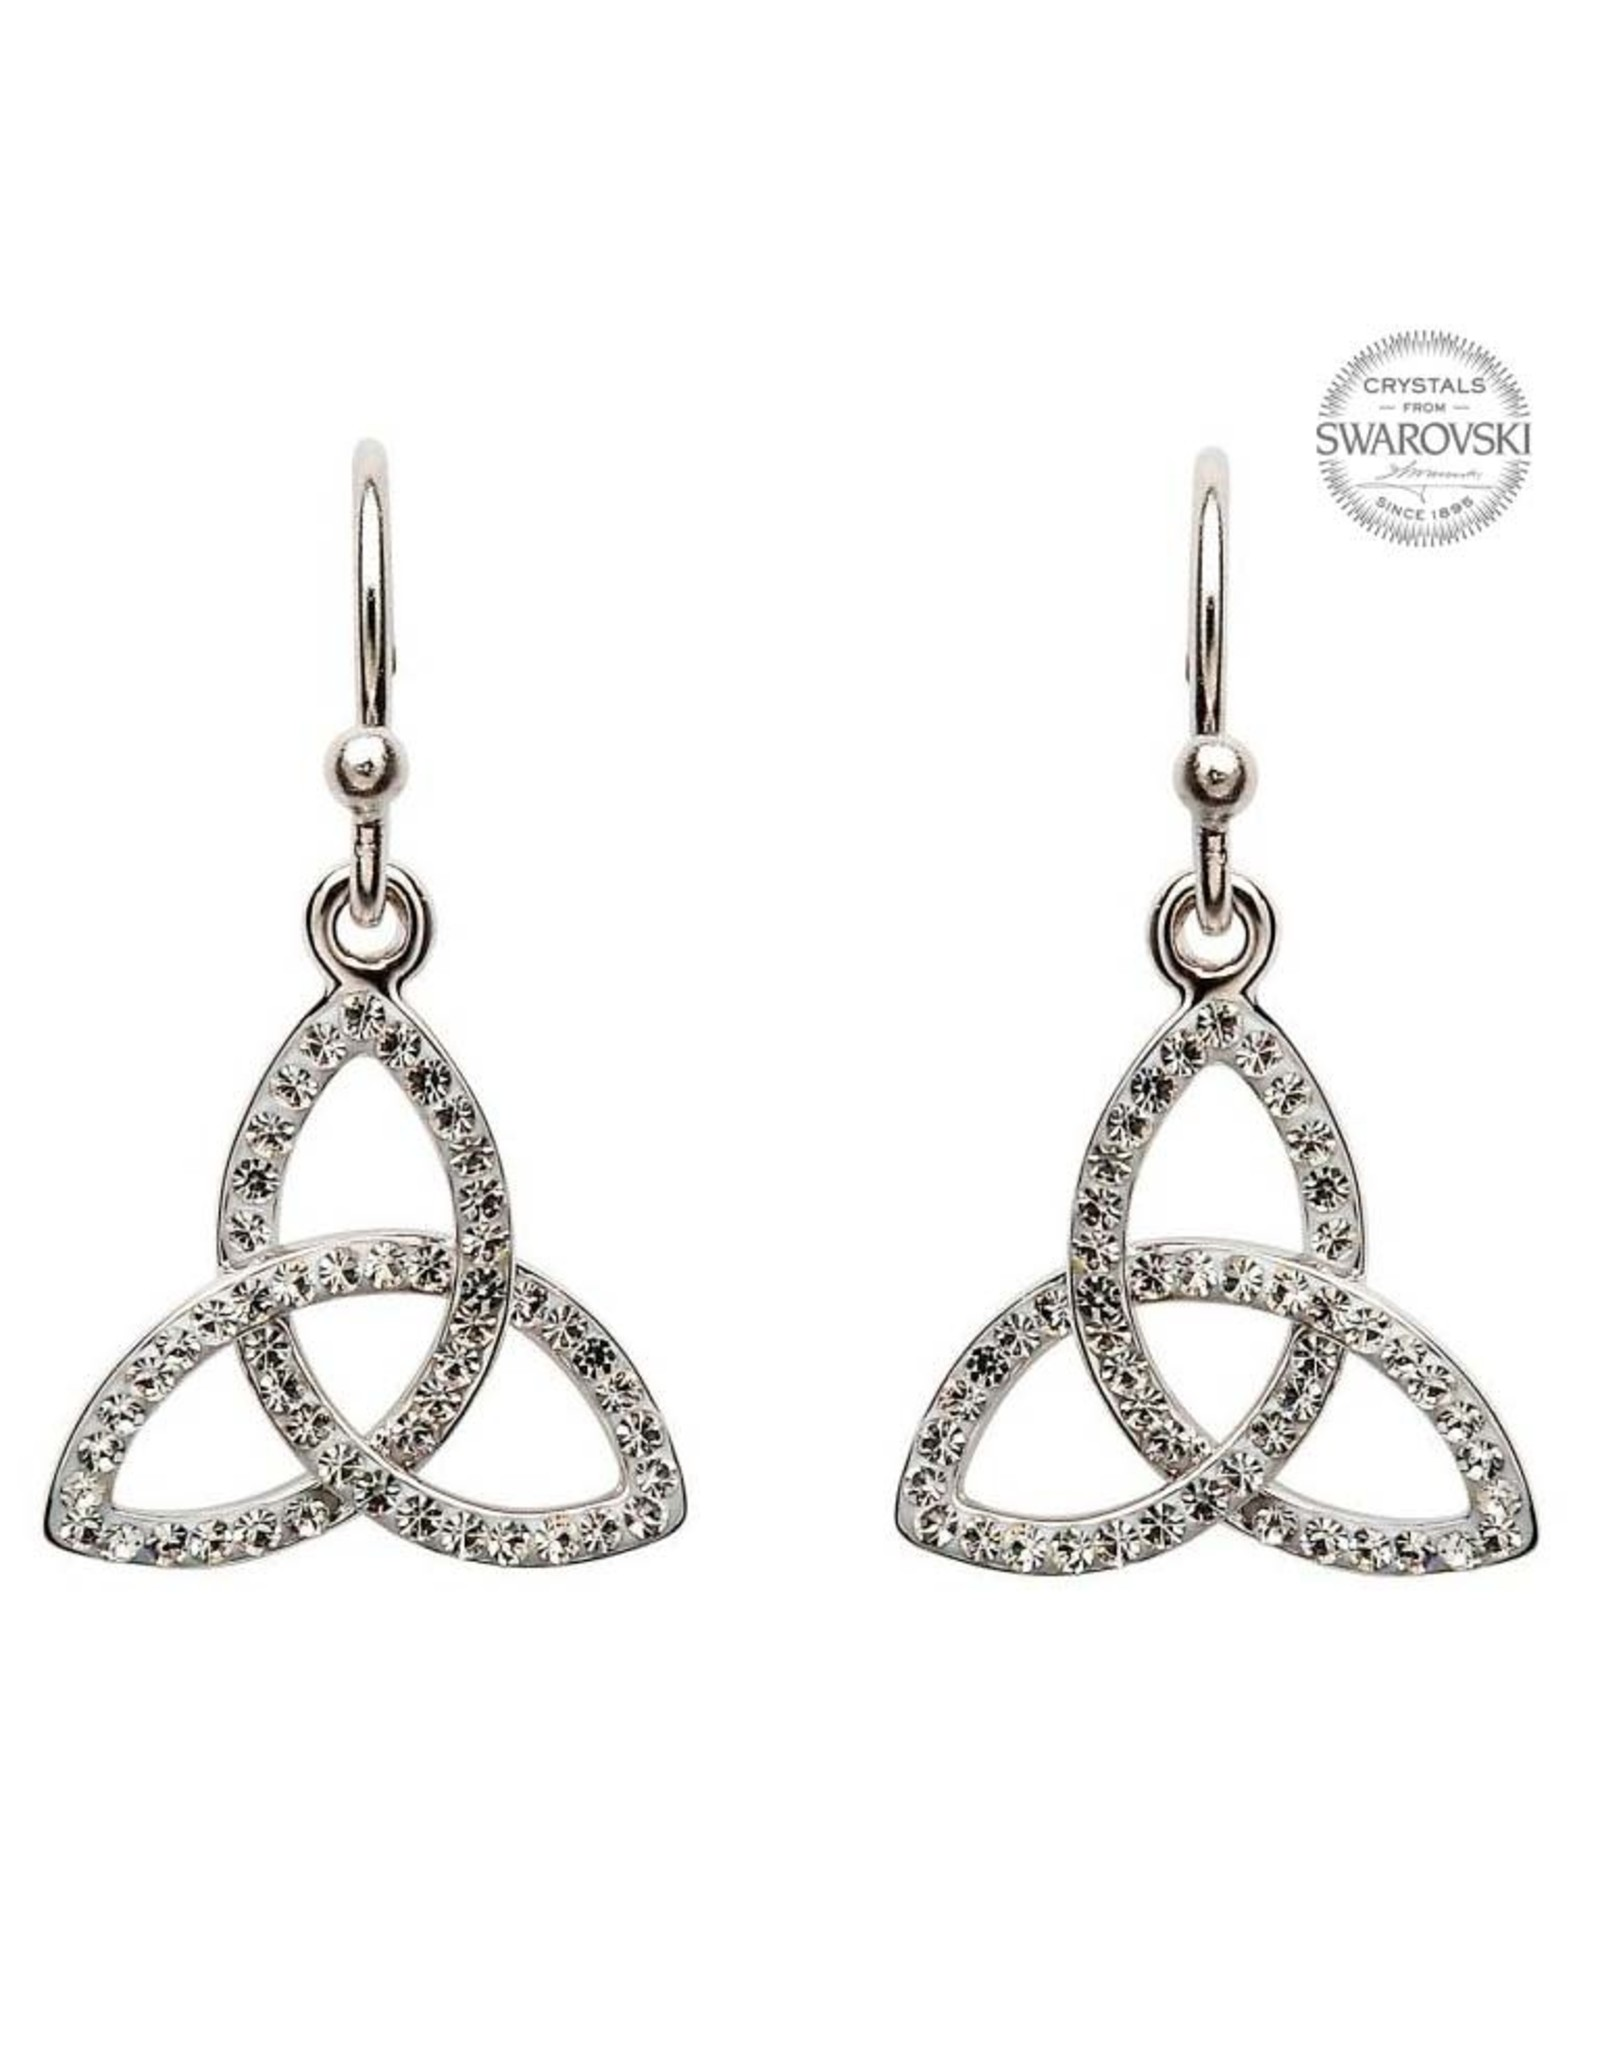 Shanore Trinity KnTrinity Knot Drop Earrings With Swarovski Crystalsot Drop Earrings With SW Crystals